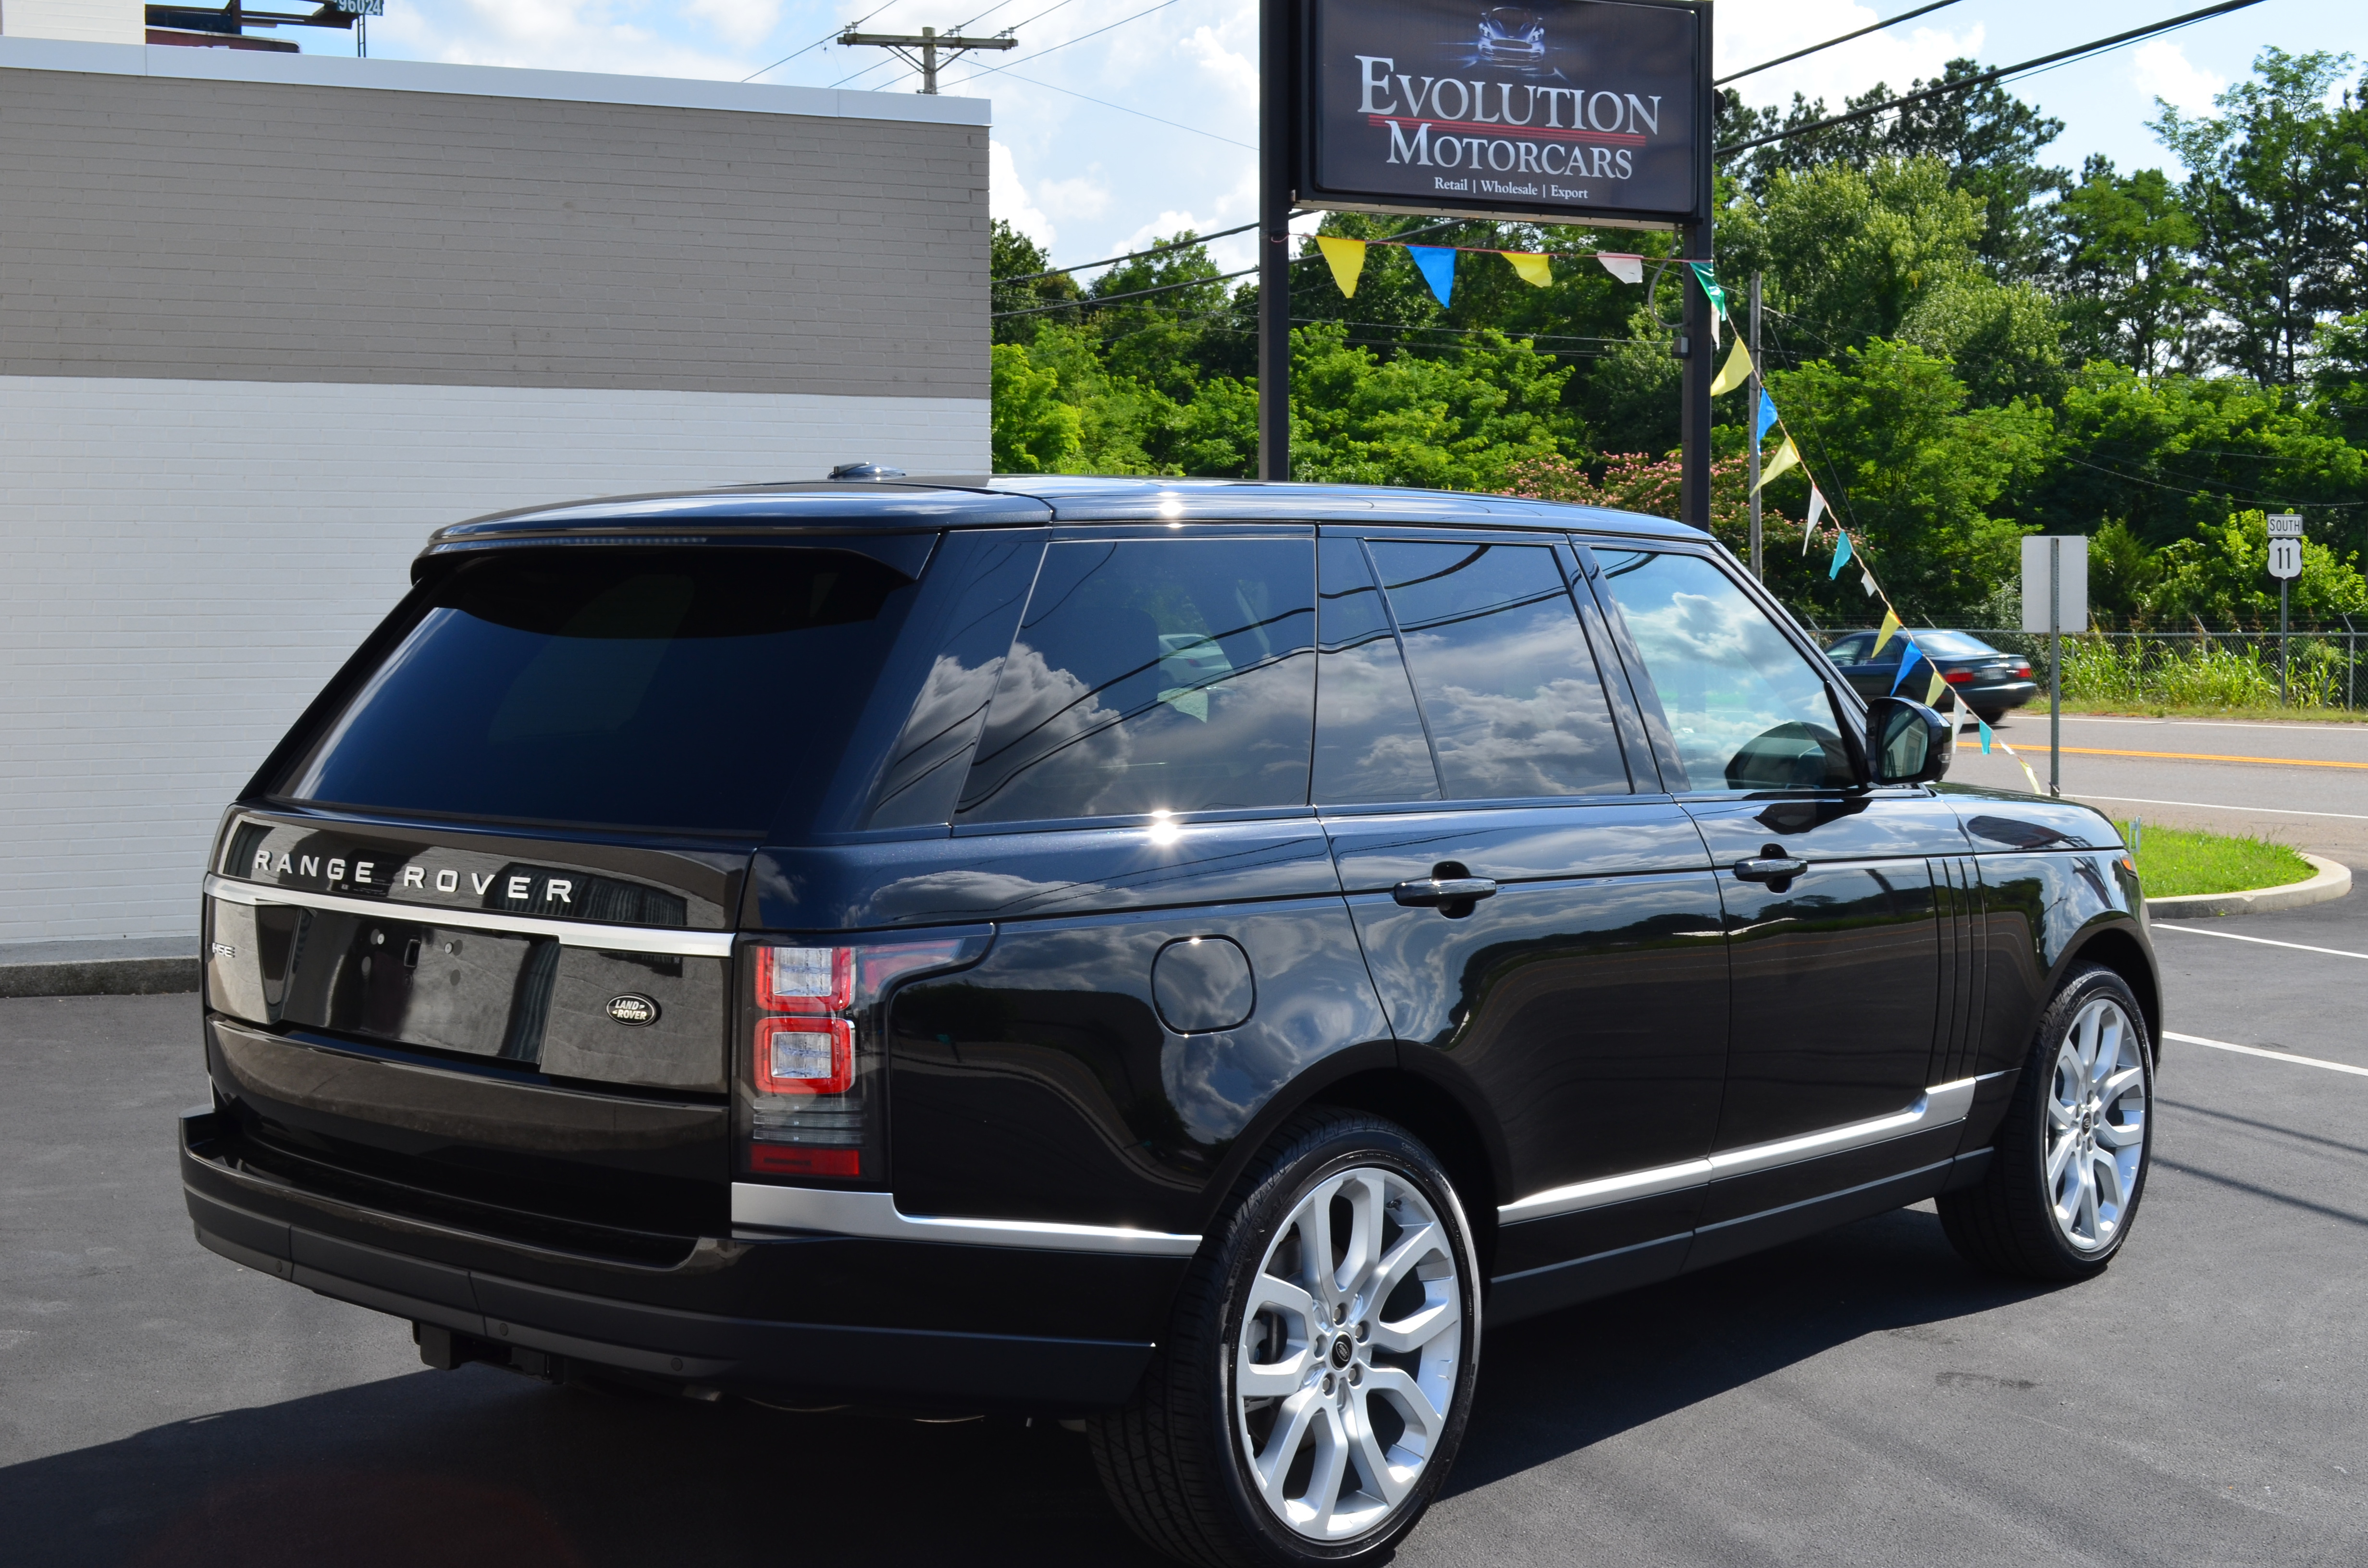 Range Rover Hse Limo Rental Amp Transport Service In Nyc